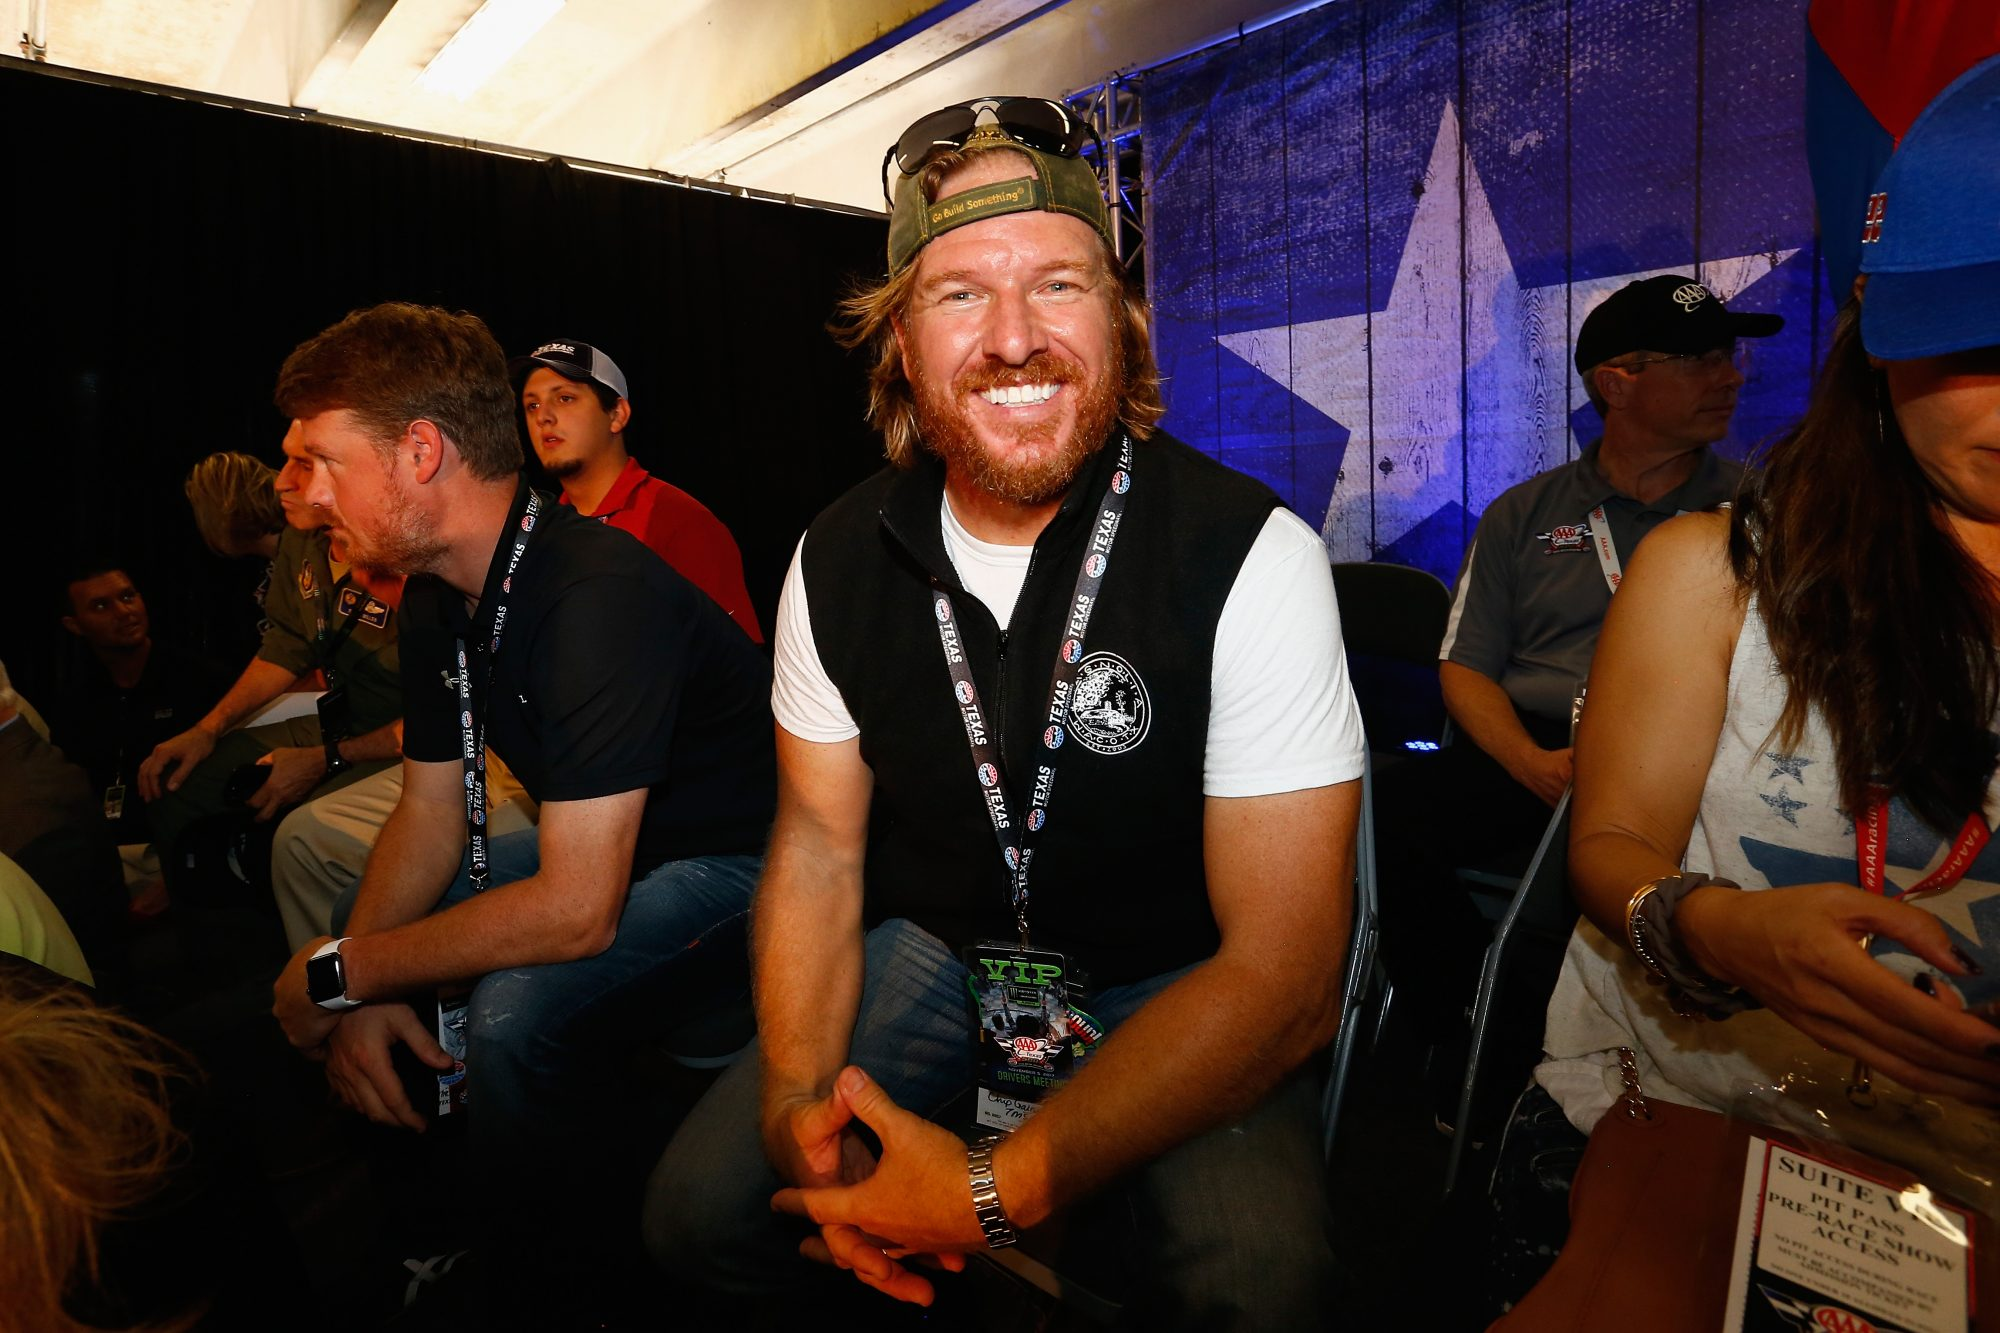 Chip Gaines Is Looking to Make Some Dreams Come True with a Contest for Fixer Upper Fans